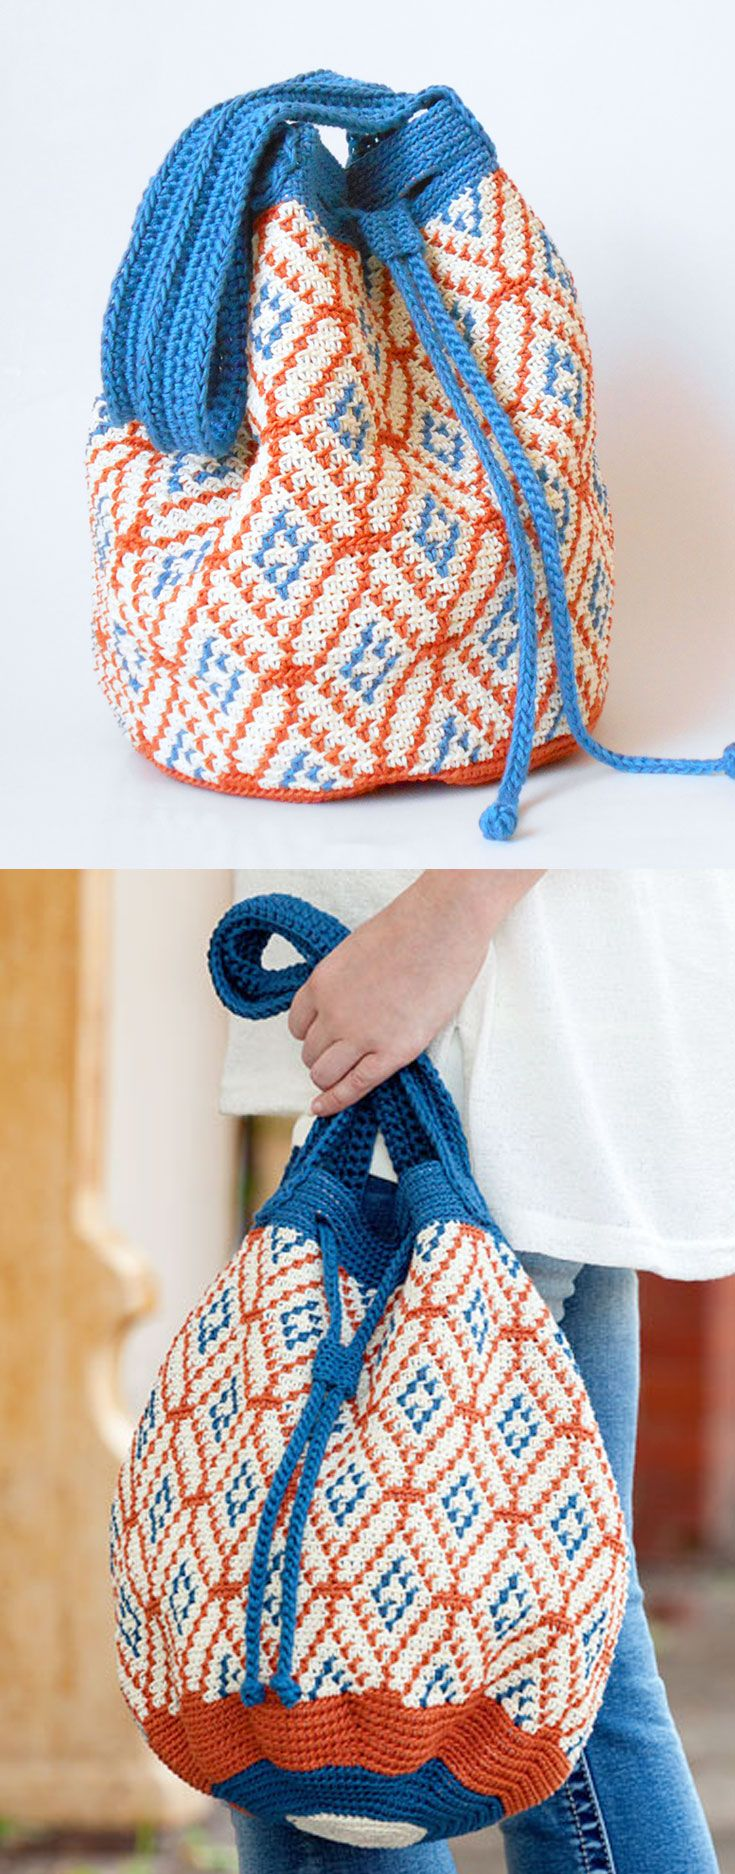 Spanish Tile Bag, in Learn to Tapestry Crochet book that includes basic steps on how to carry and wrap yarn, change colors, step-by-step photos, written instructions and charts. A great learn-to book! Also included are 6 projects perfect for a beginner.